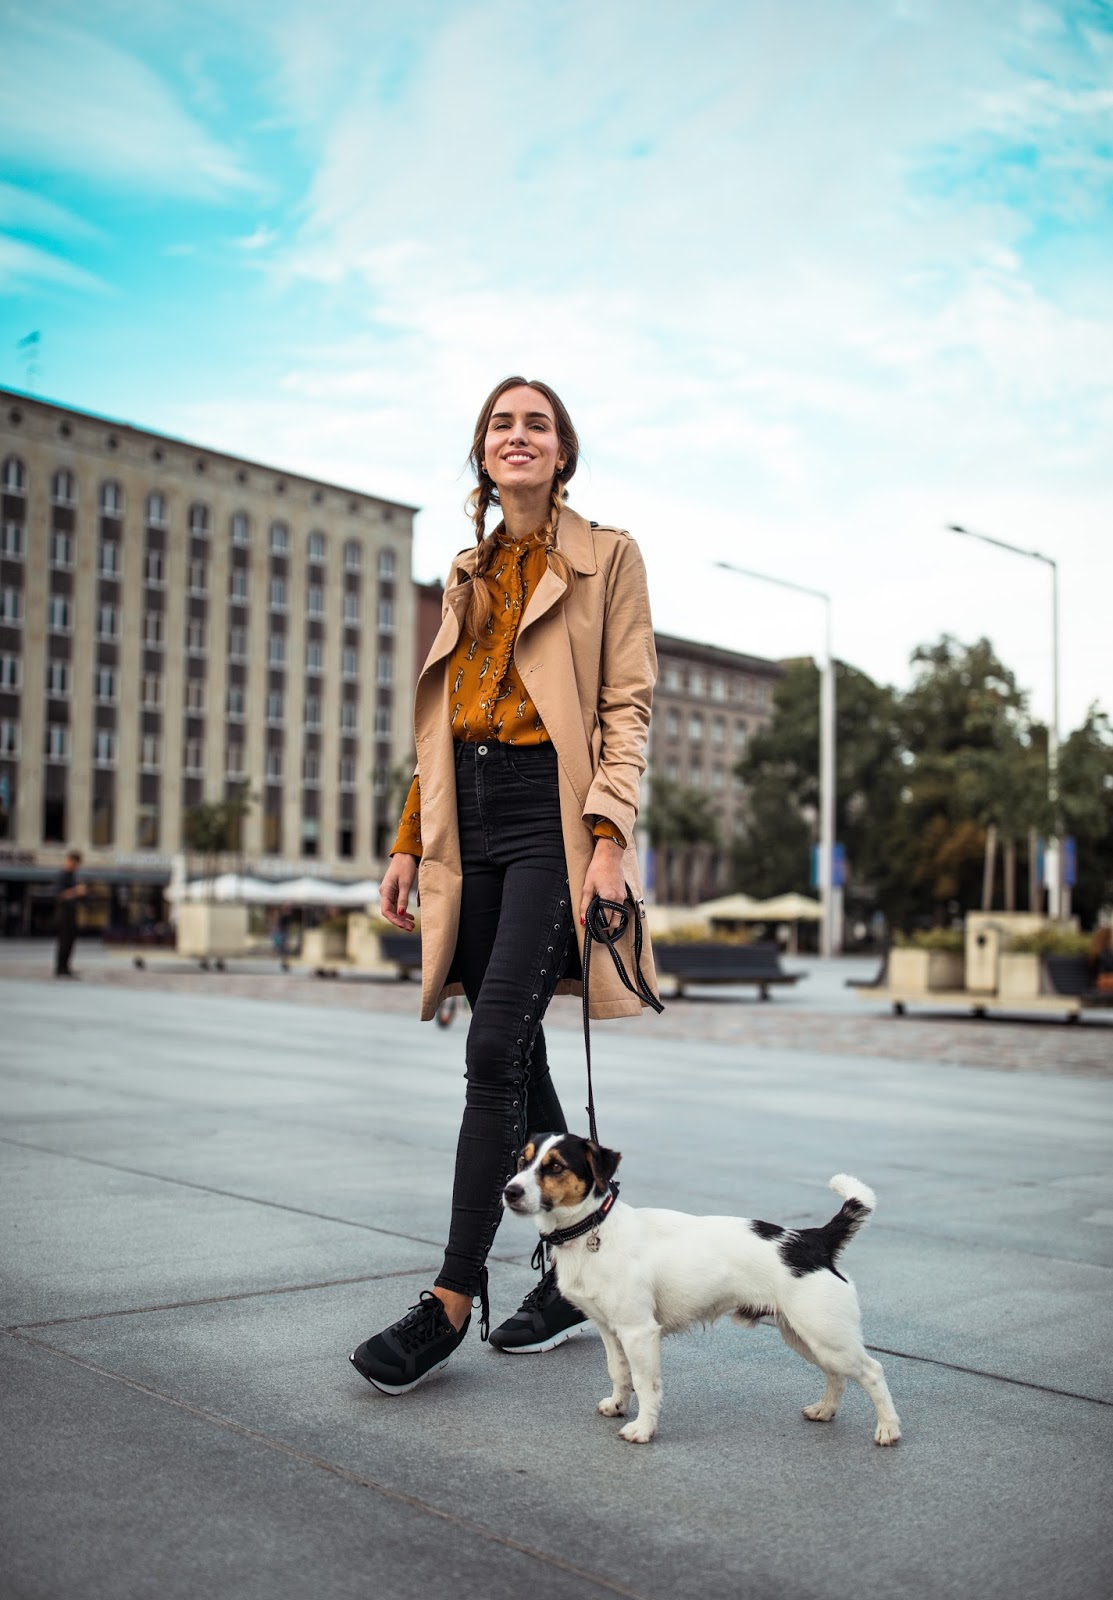 trench coat outfit timeless fall style